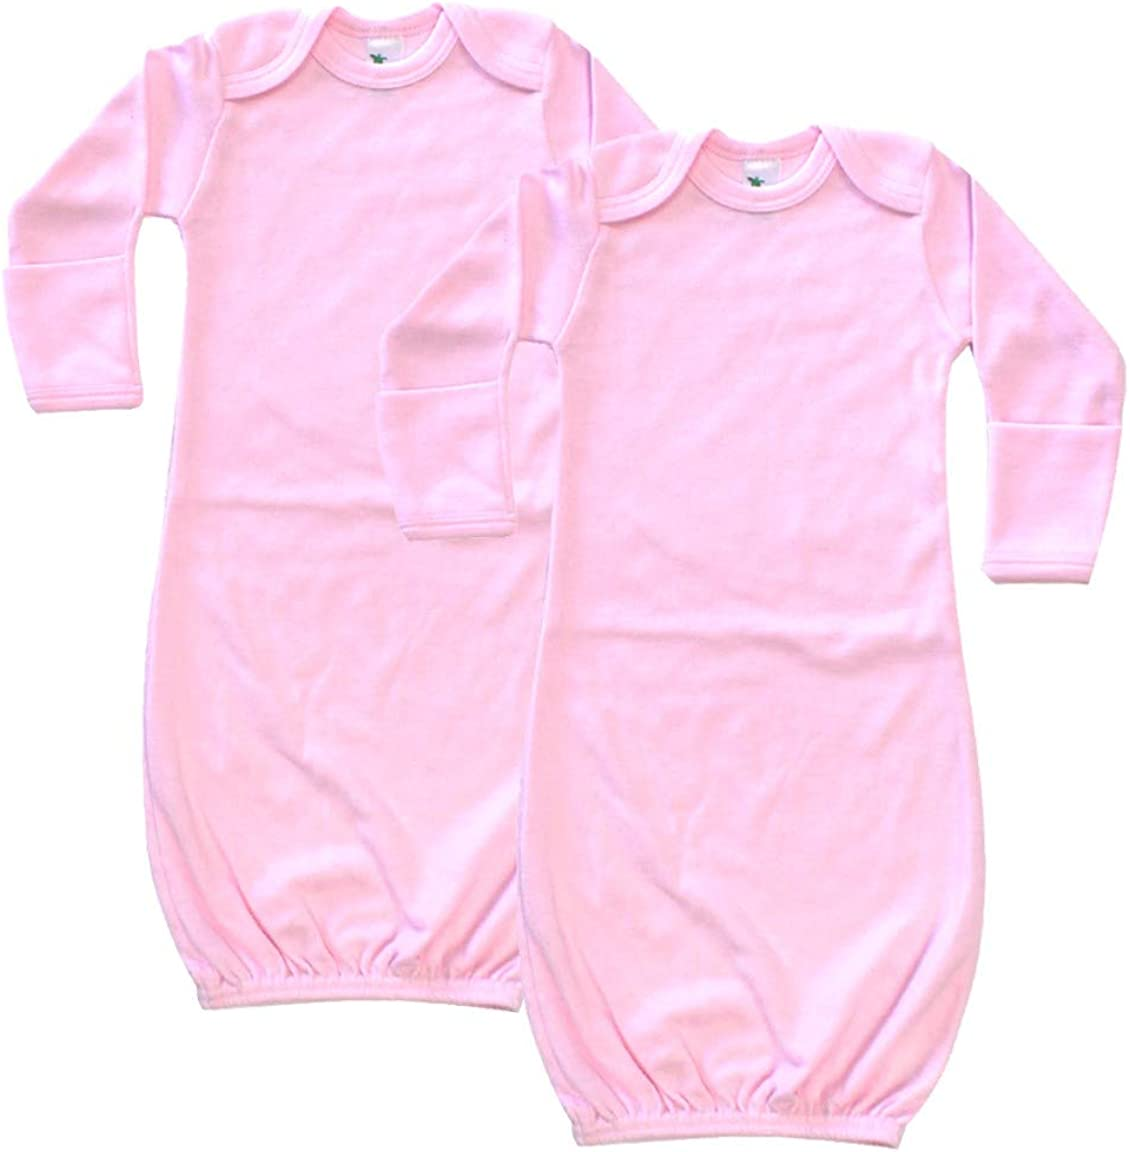 Laughing Giraffe Baby Long Sleeve Sleeper Gown with Mittens 0-3M (2-PACK)